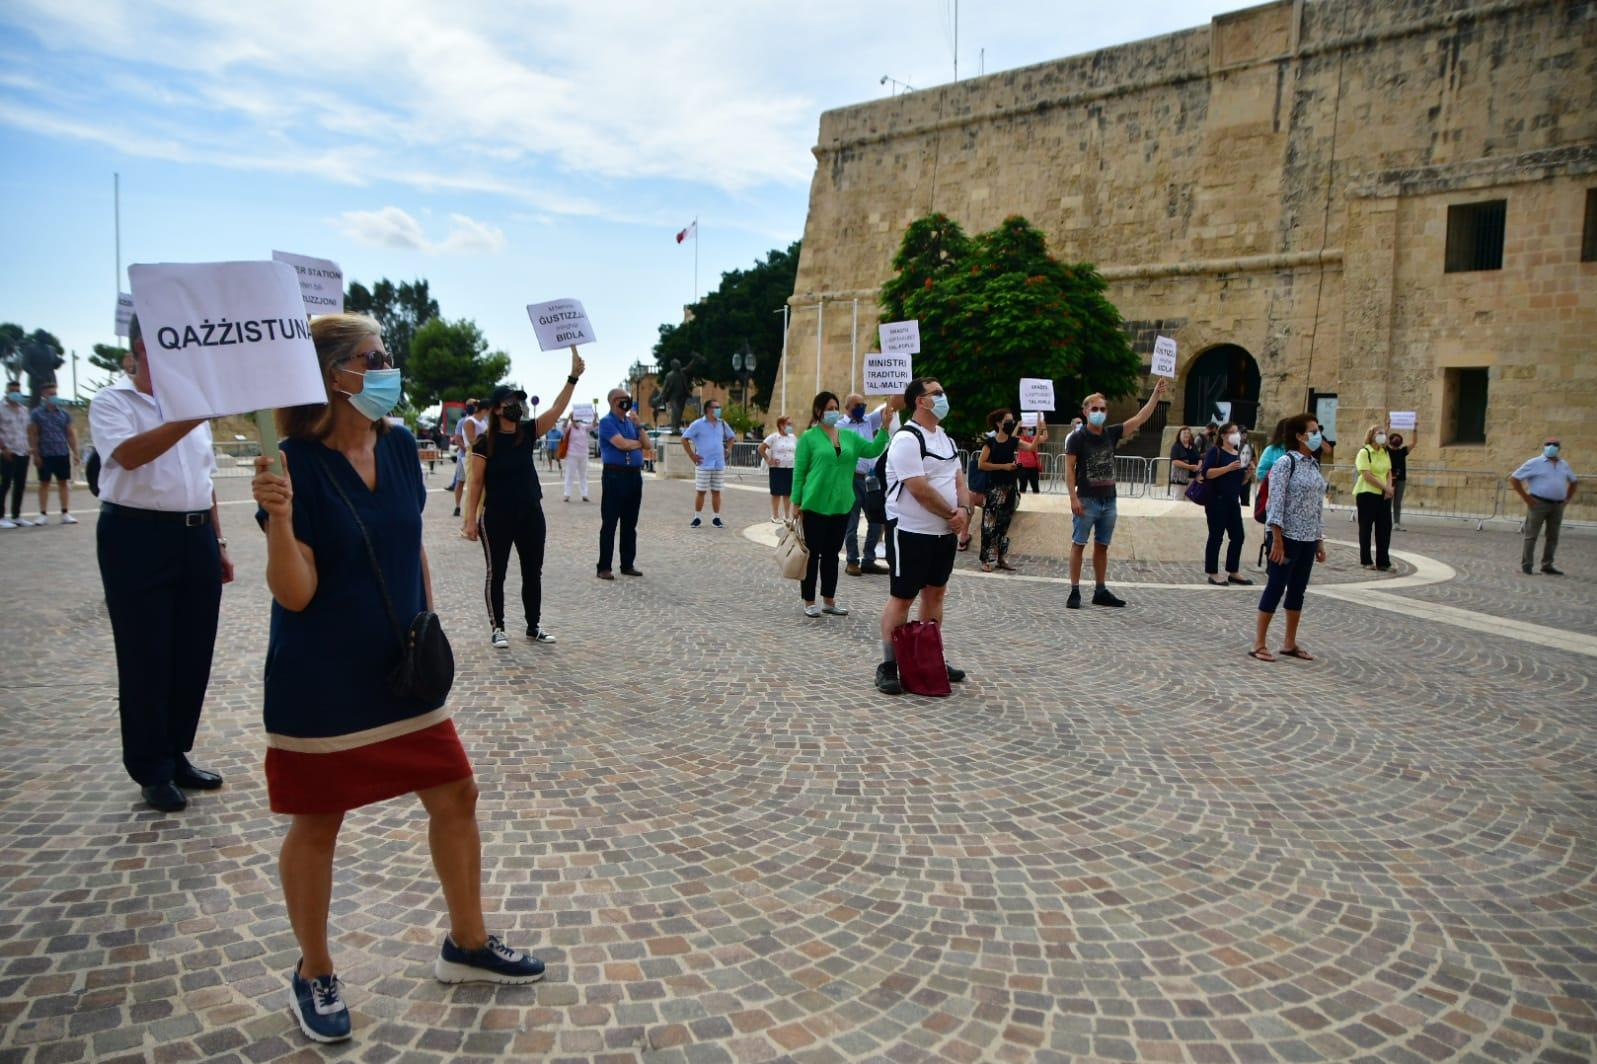 Protesters held a socially distanced demonstration in front of Castille. Photo: Jonathan Borg